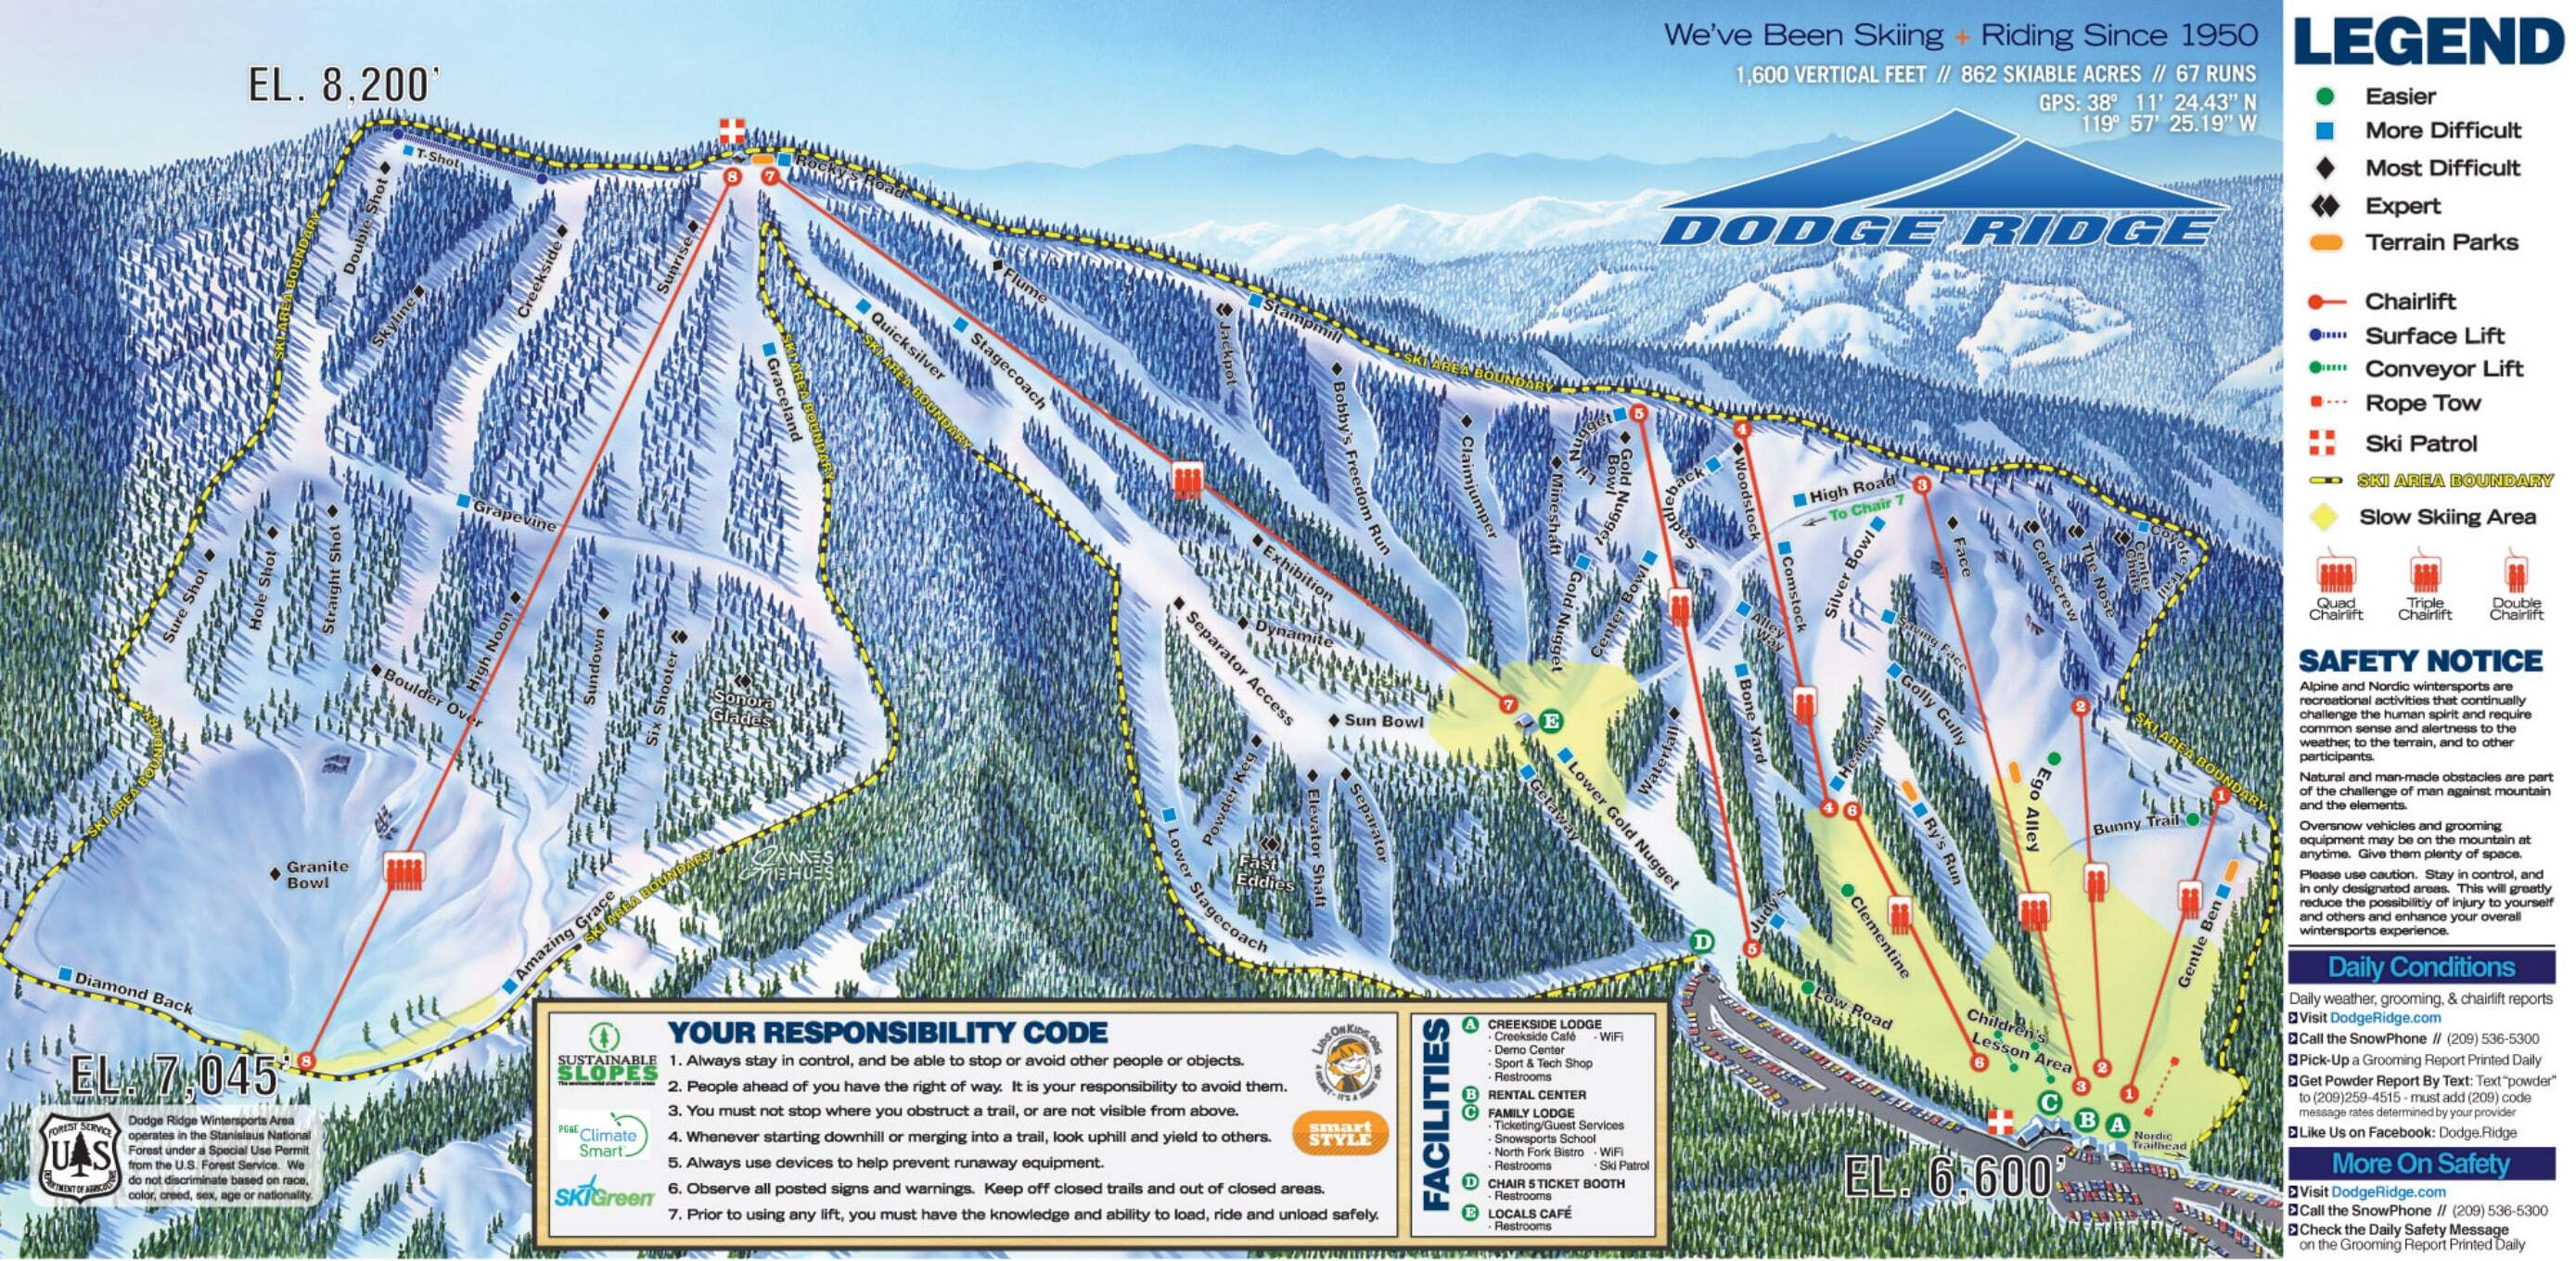 dodge ridge ski resort guide location map dodge ridge ski holiday acco. Cars Review. Best American Auto & Cars Review